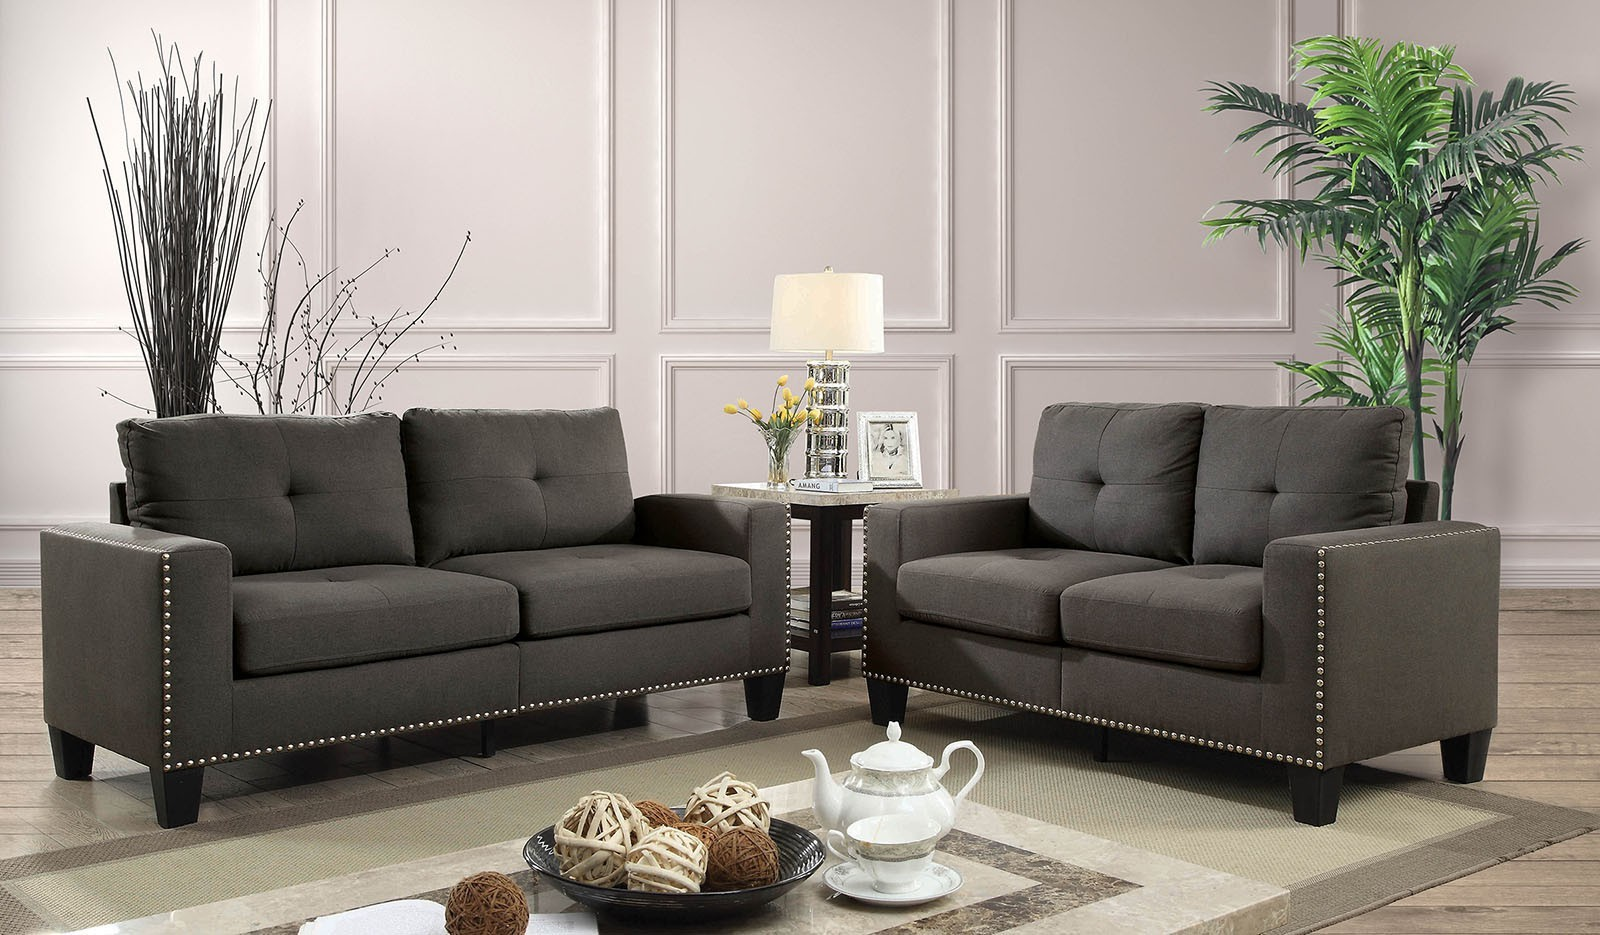 Attwell 2pc Sofa Loveseat Set